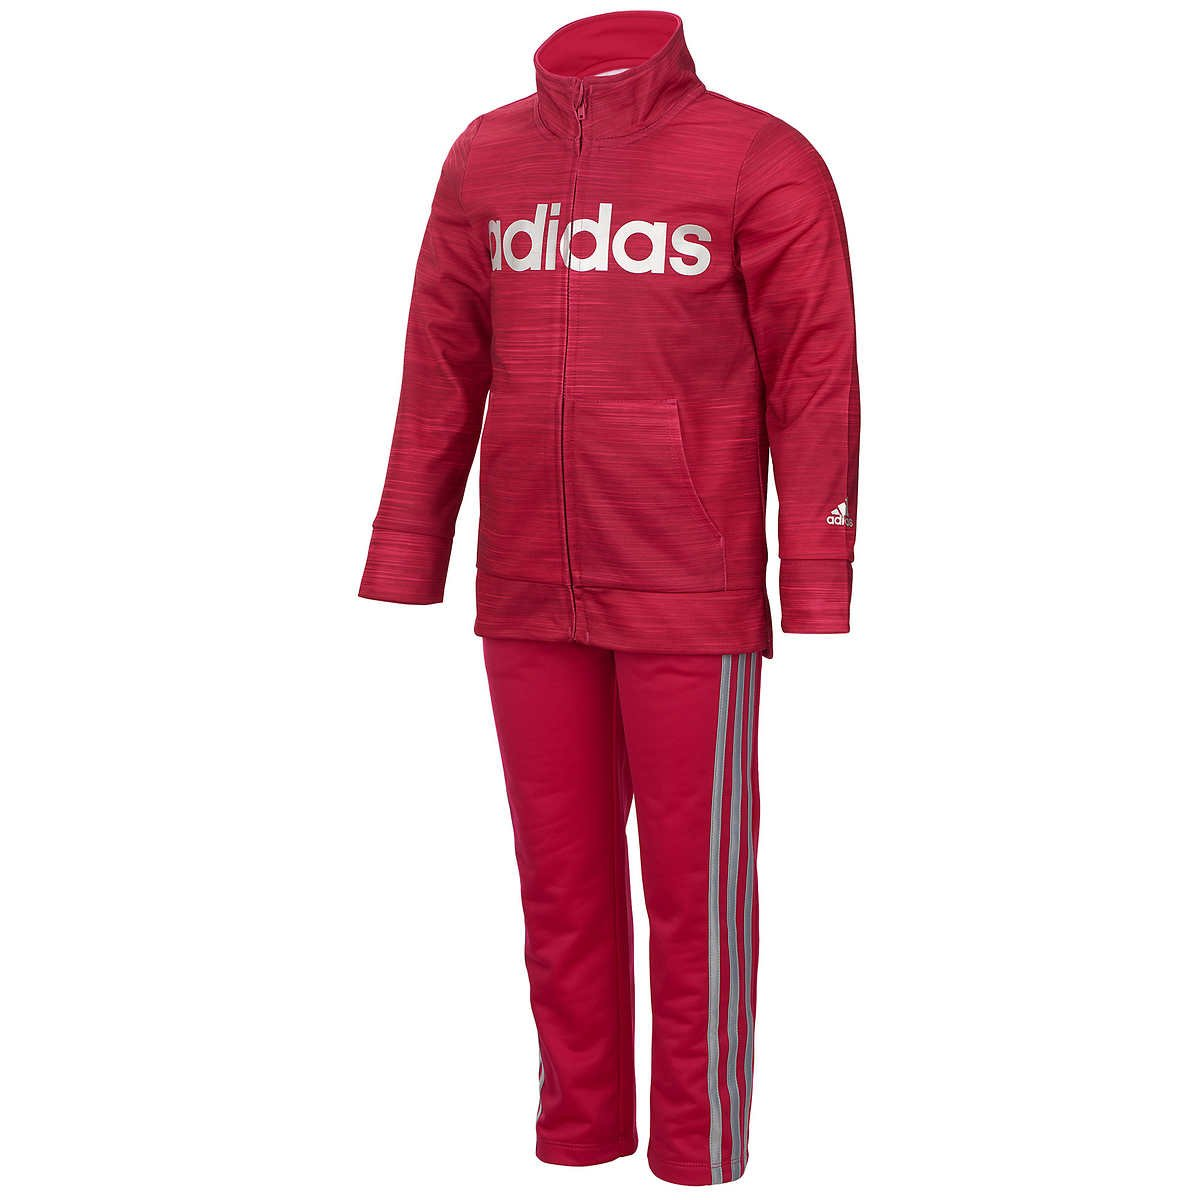 Adidas Girls' Tricot Zip Jacket and Pant Set (Pink, 2T)